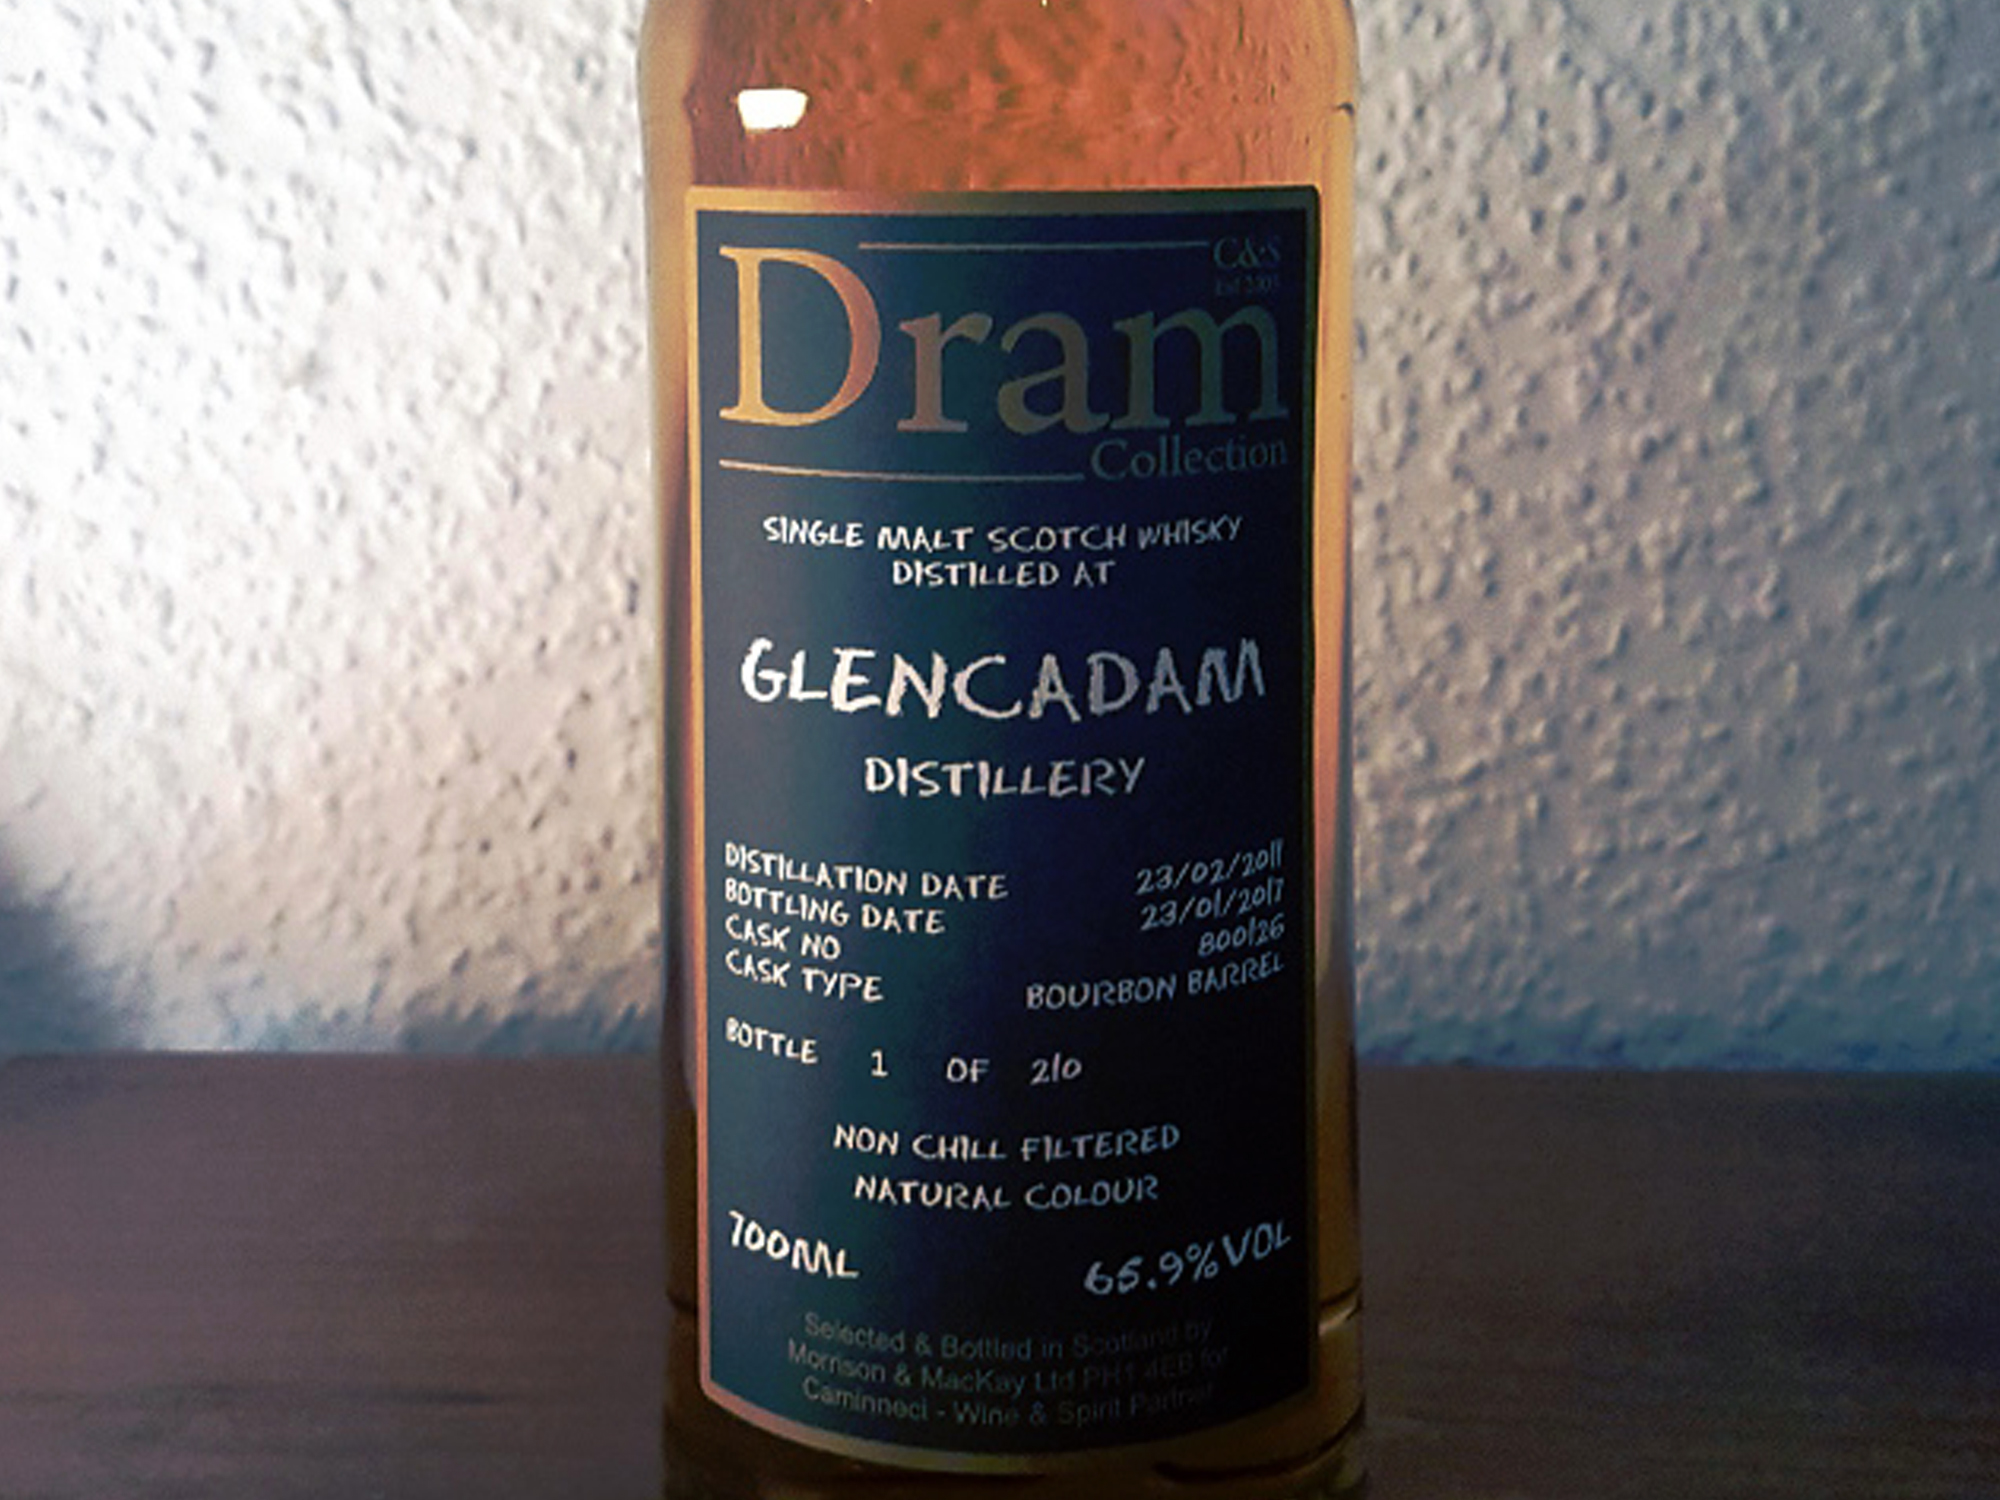 Day 2: Glencadam  Dram Collection 2011/2017